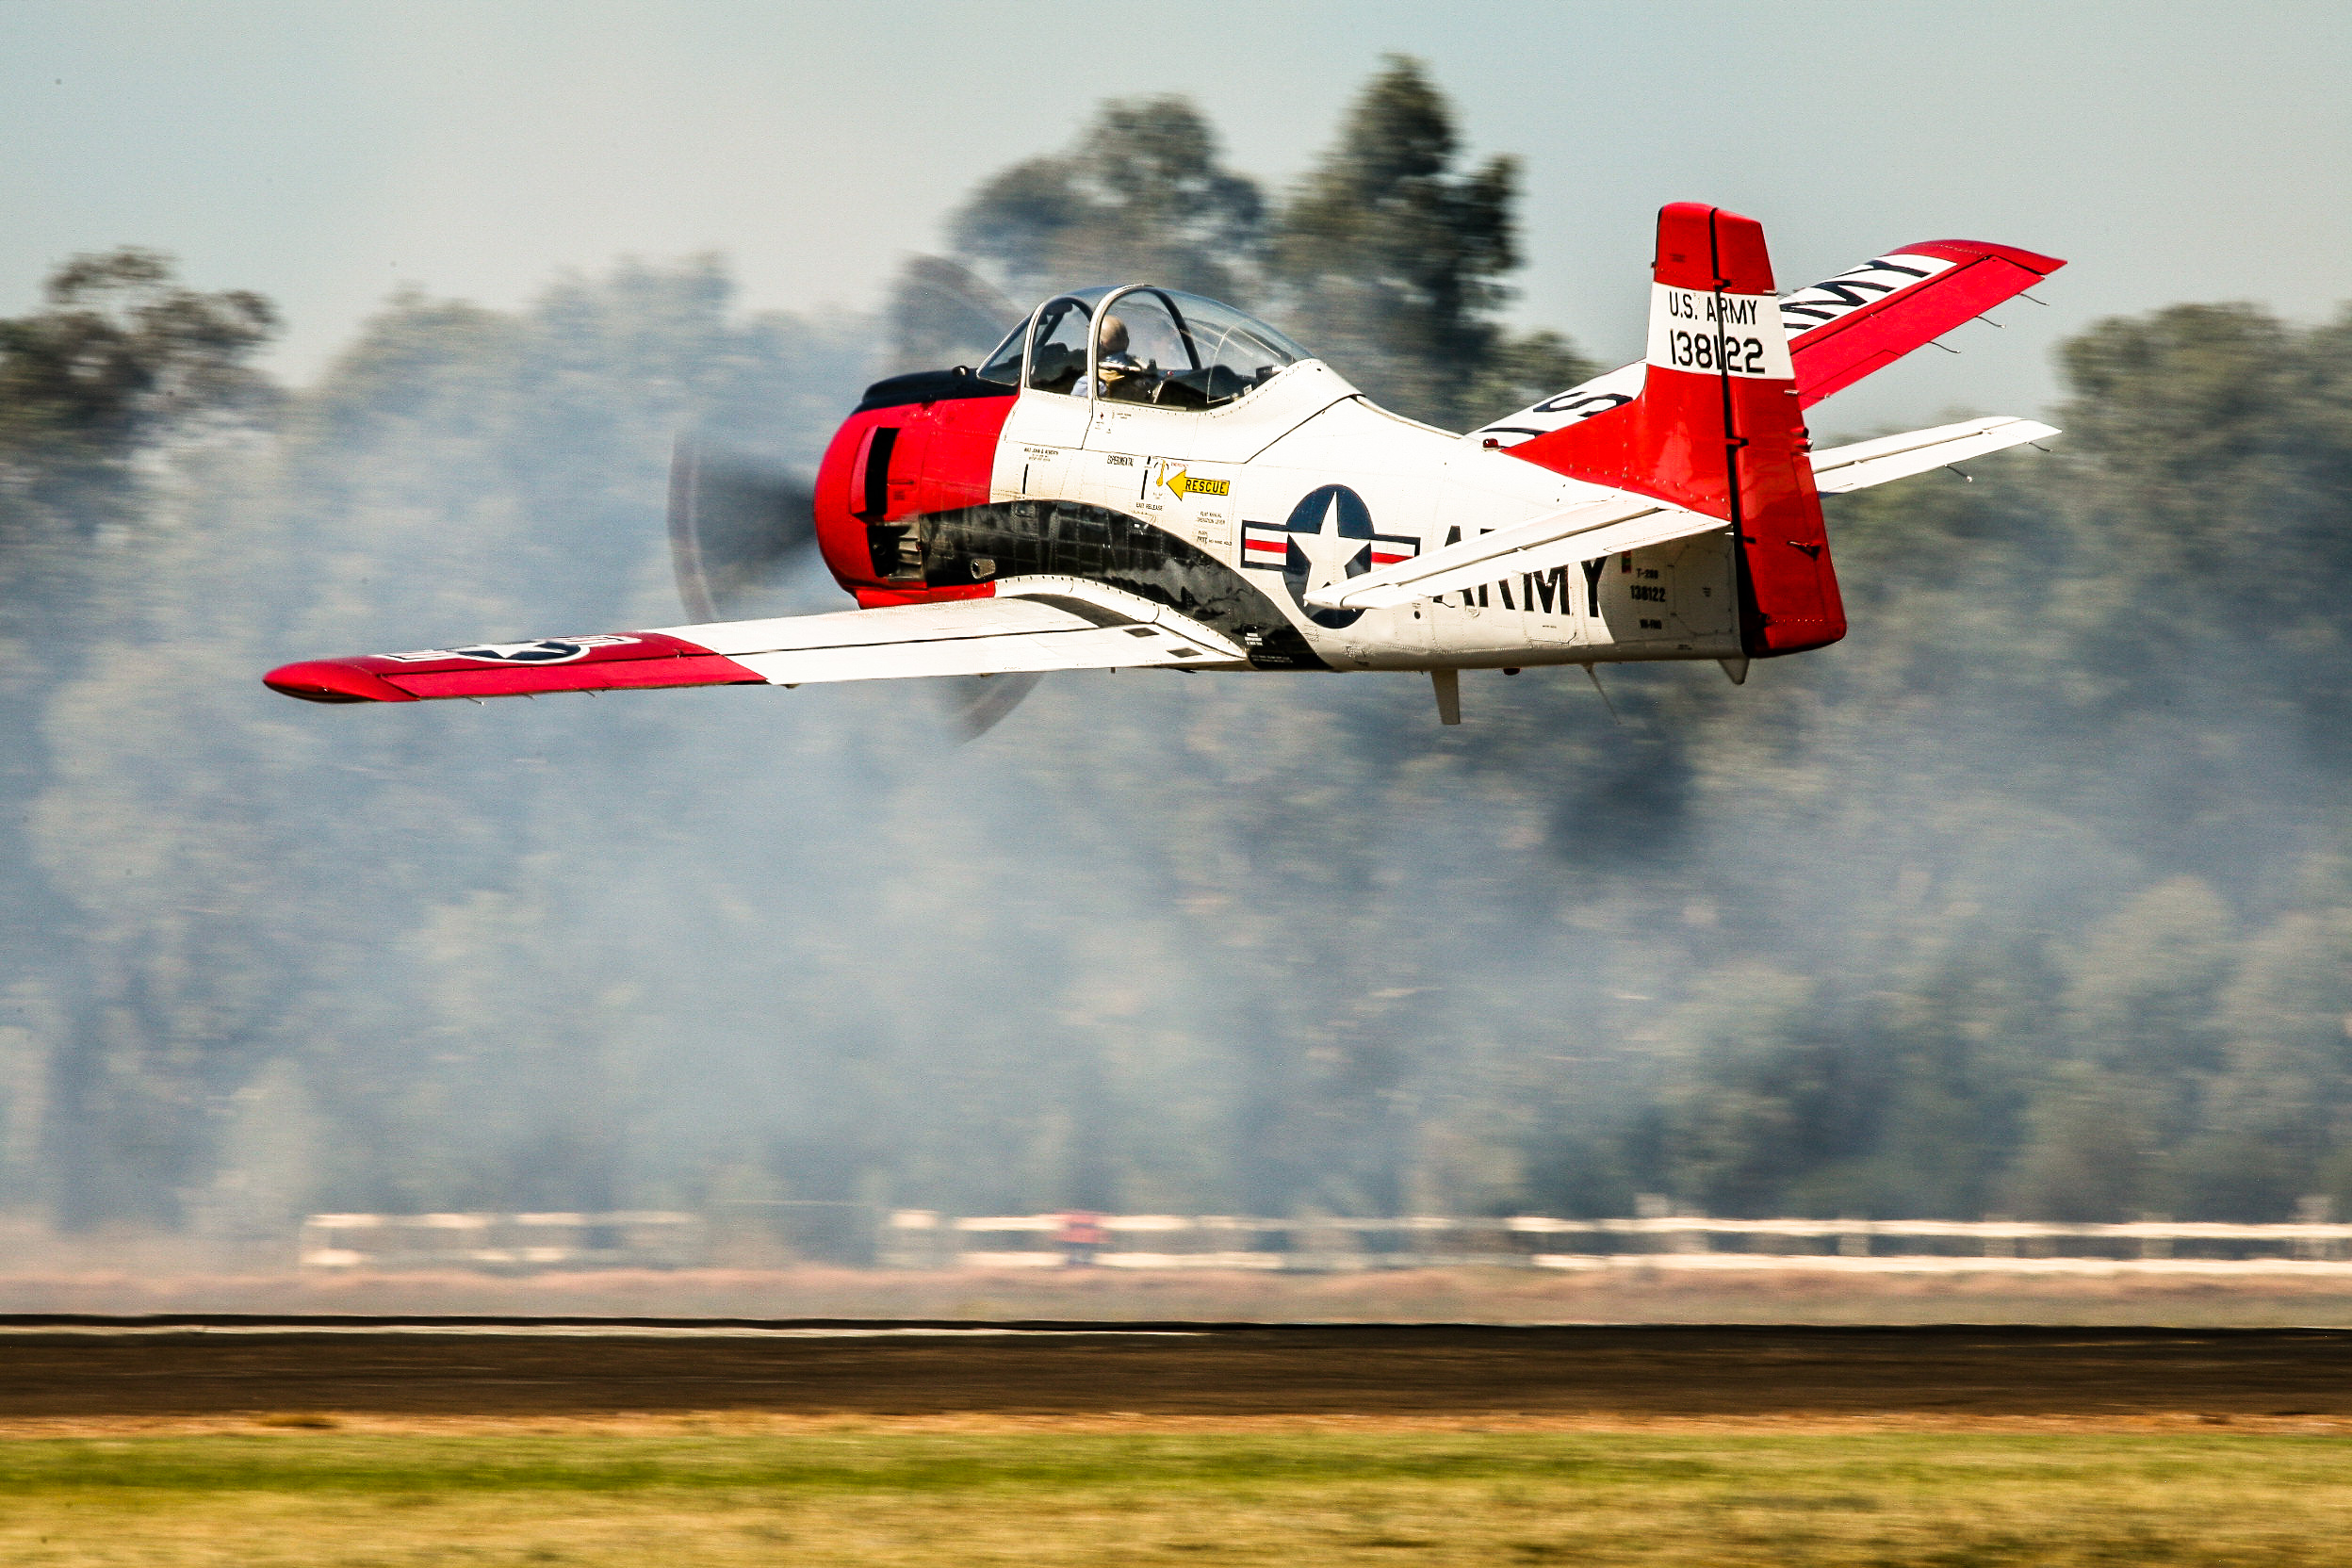 Cameron Rolf dazzled the crowd with his T-28 Trojan. (photo by Phil Buckley)